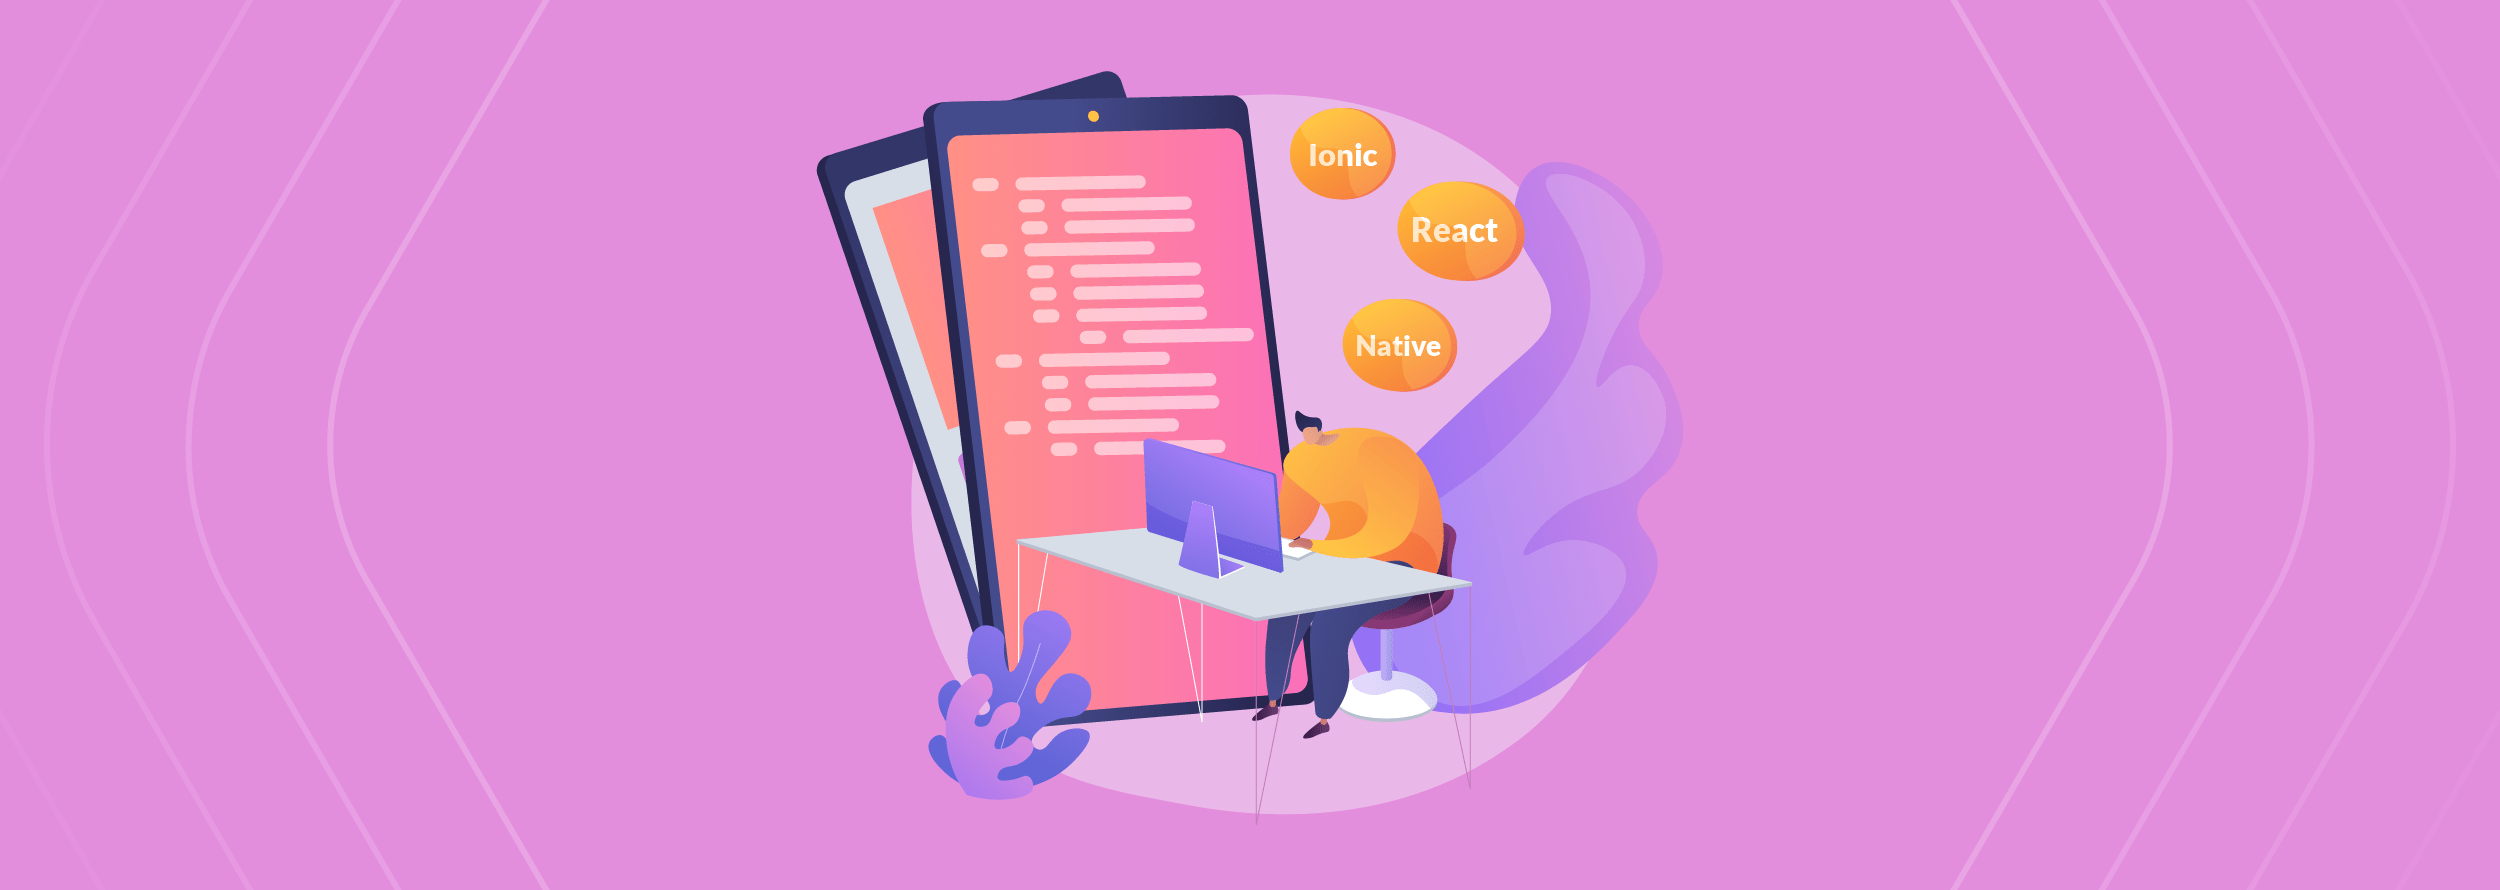 Ionic React vs React Native: The differences